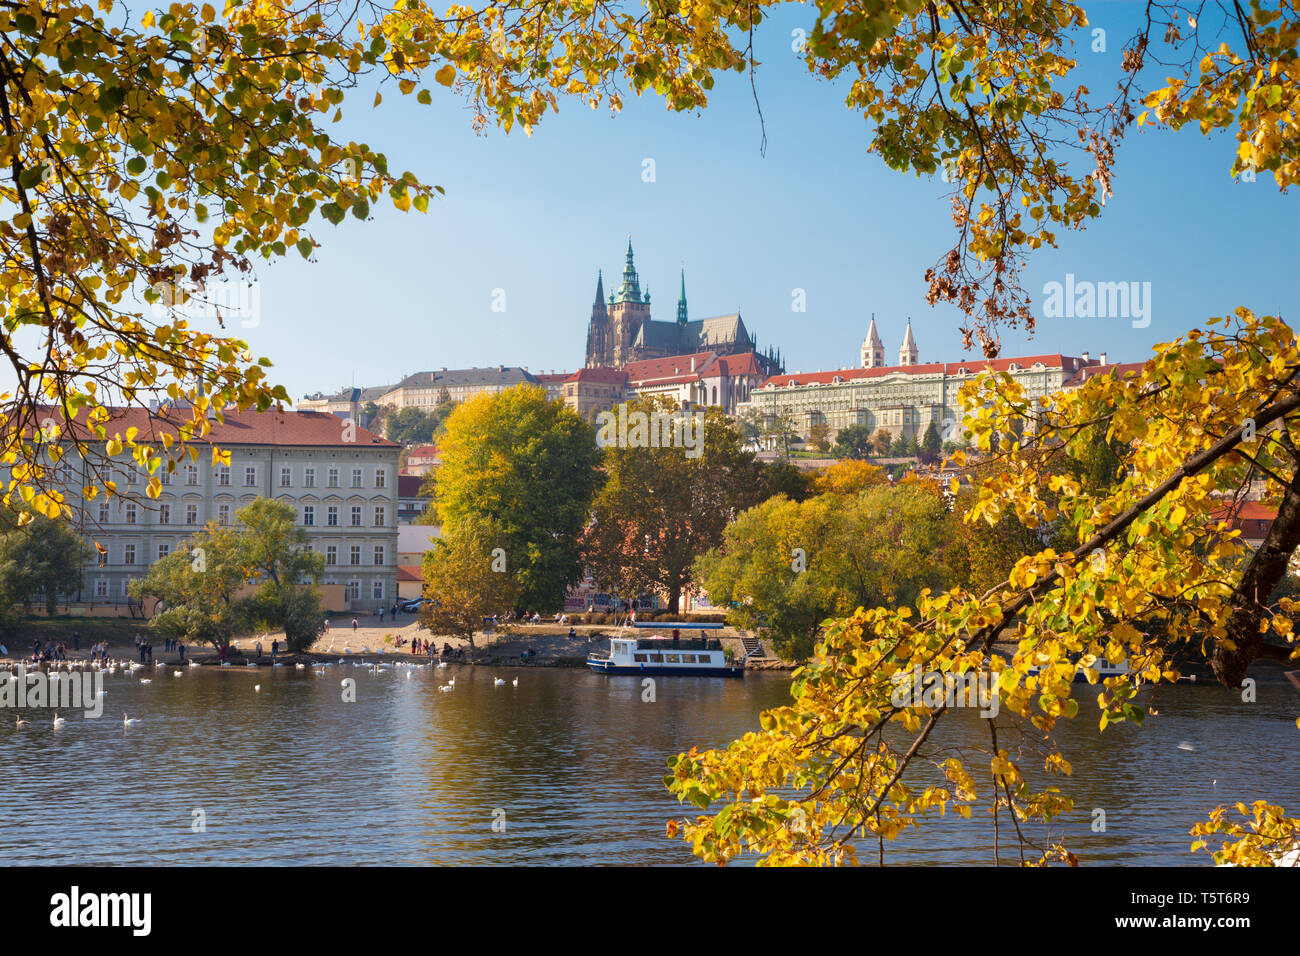 Prague - The Castle and Cathedral withe the Vltava river and the autumn leafs. - Stock Image